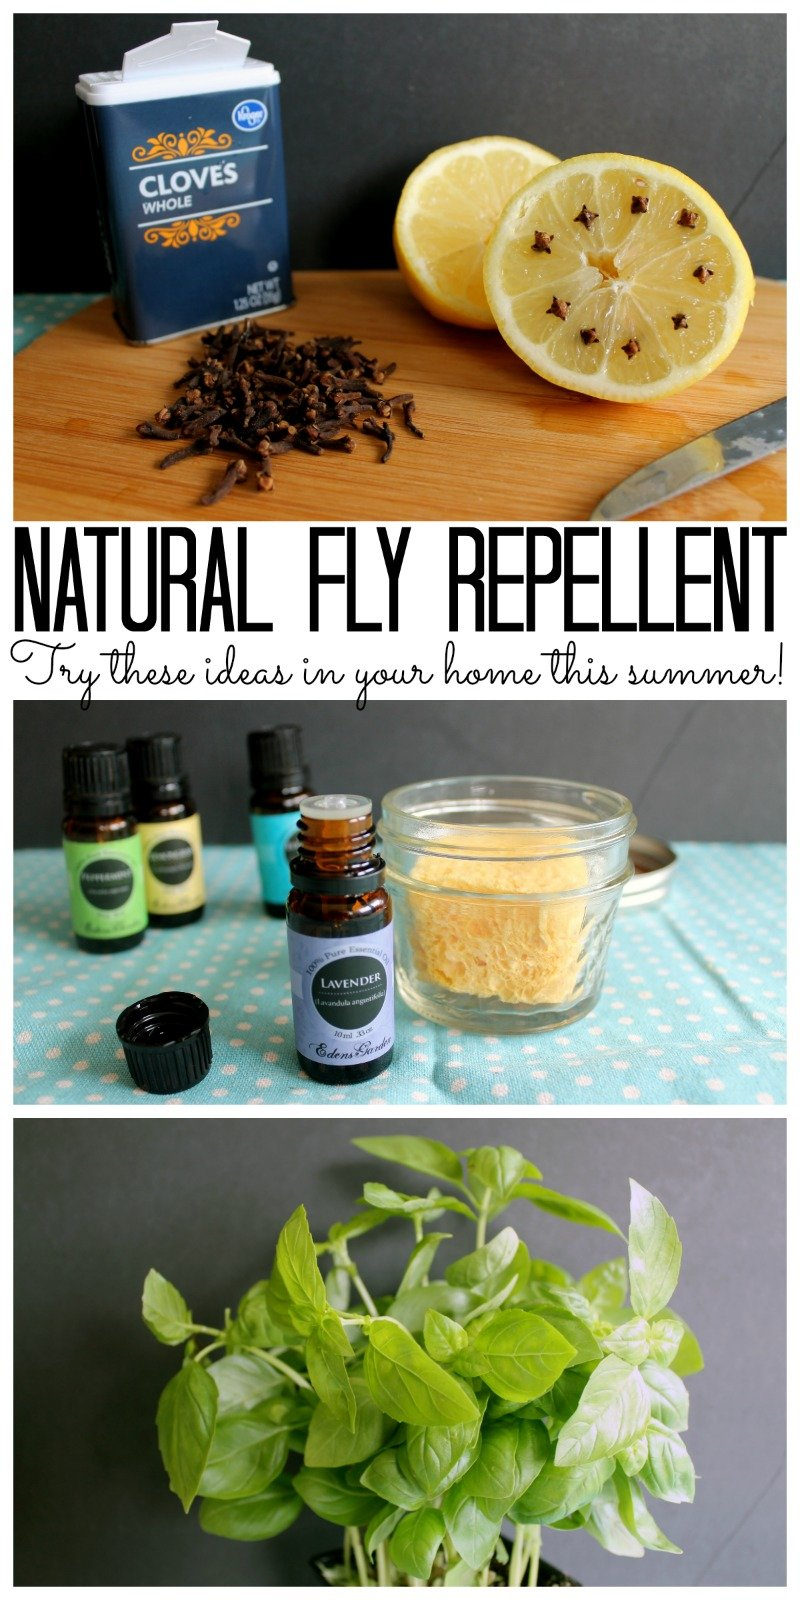 Use these natural fly repellent methods to keep flies out of your home this summer.